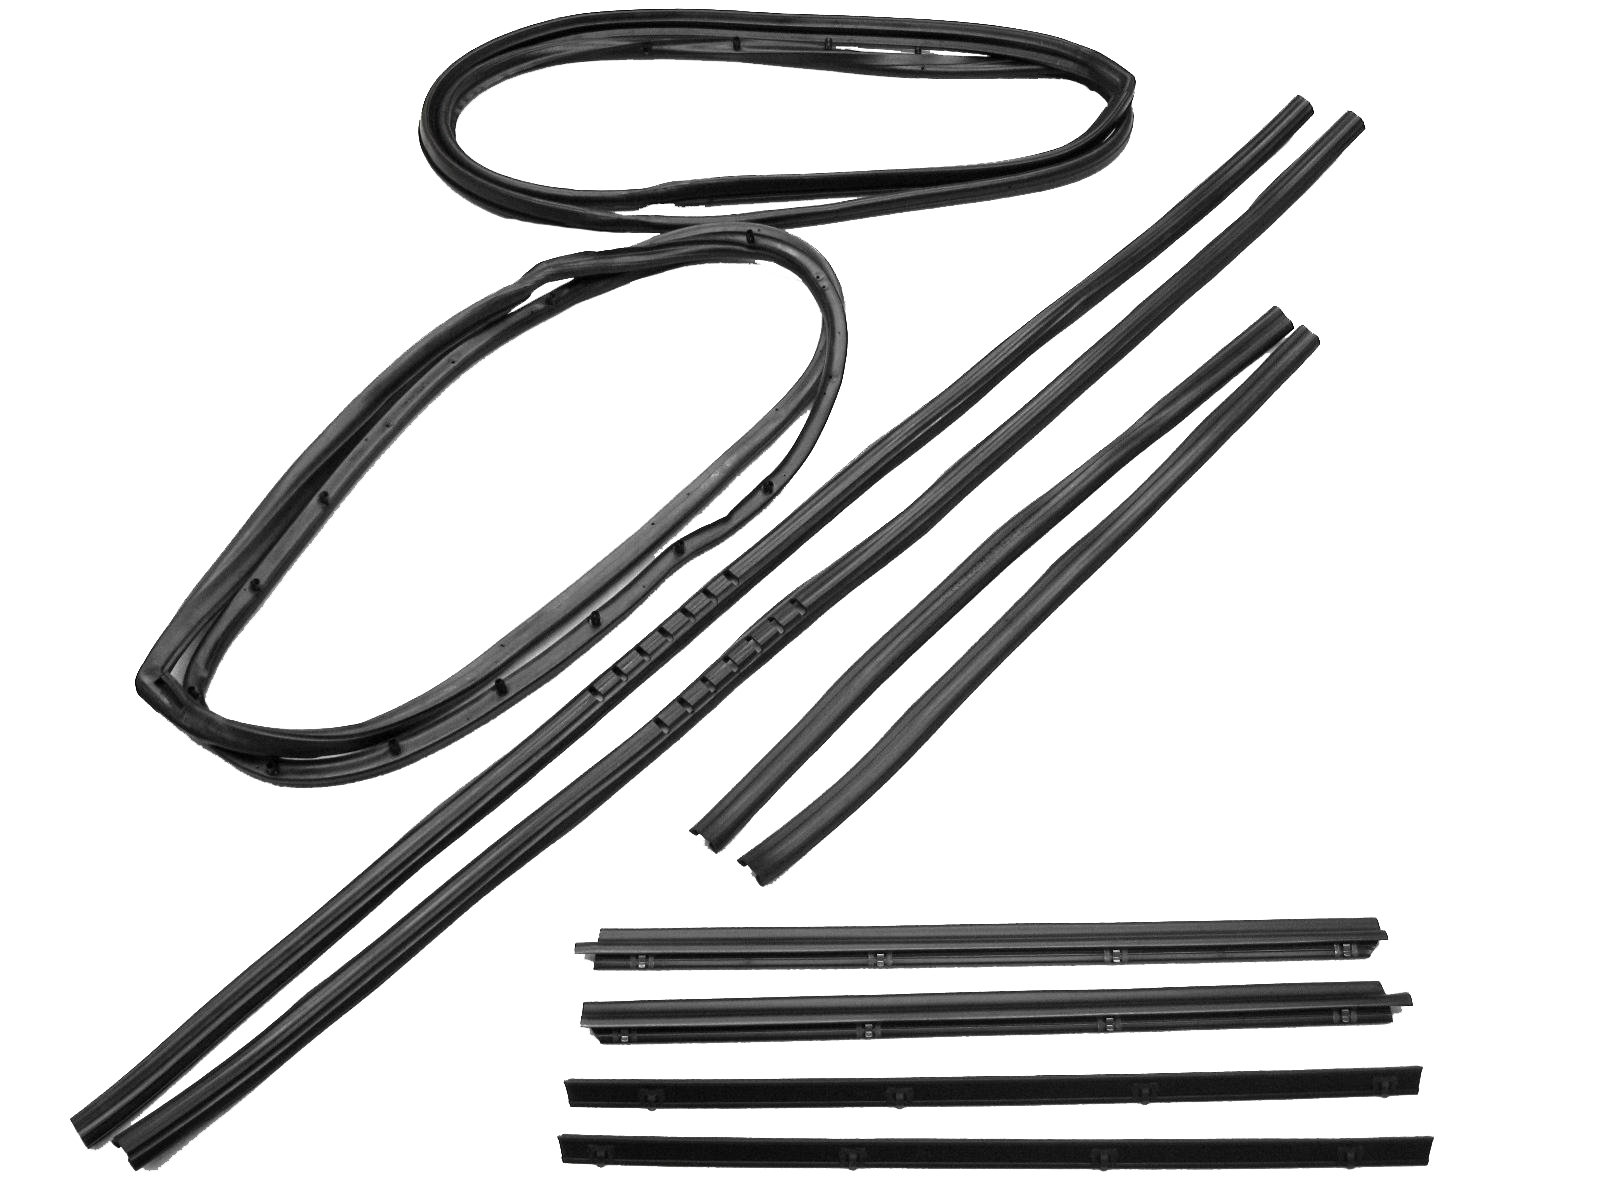 Fairchild Industries Kd Full Steel Door Seal Kit For 76 95 Jeep Cj 7 Scrambler Amp Wrangler